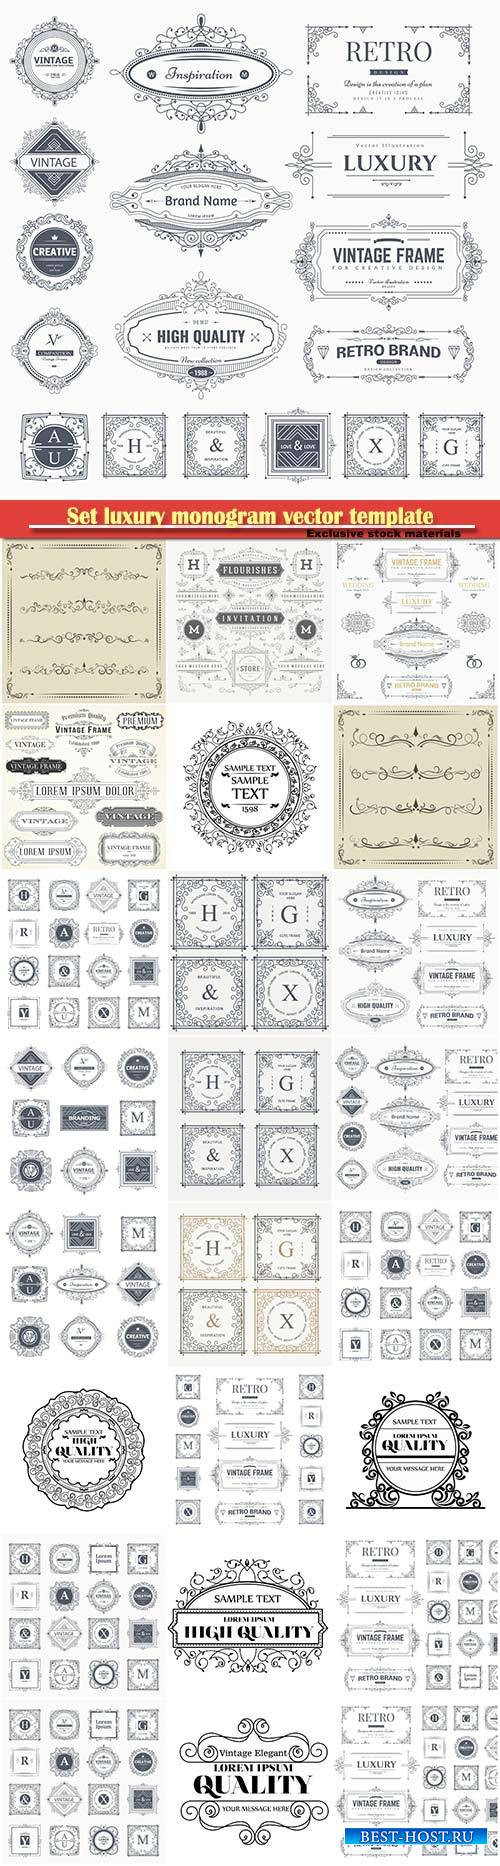 Set luxury monogram vector template, logos, badges, symbols # 9